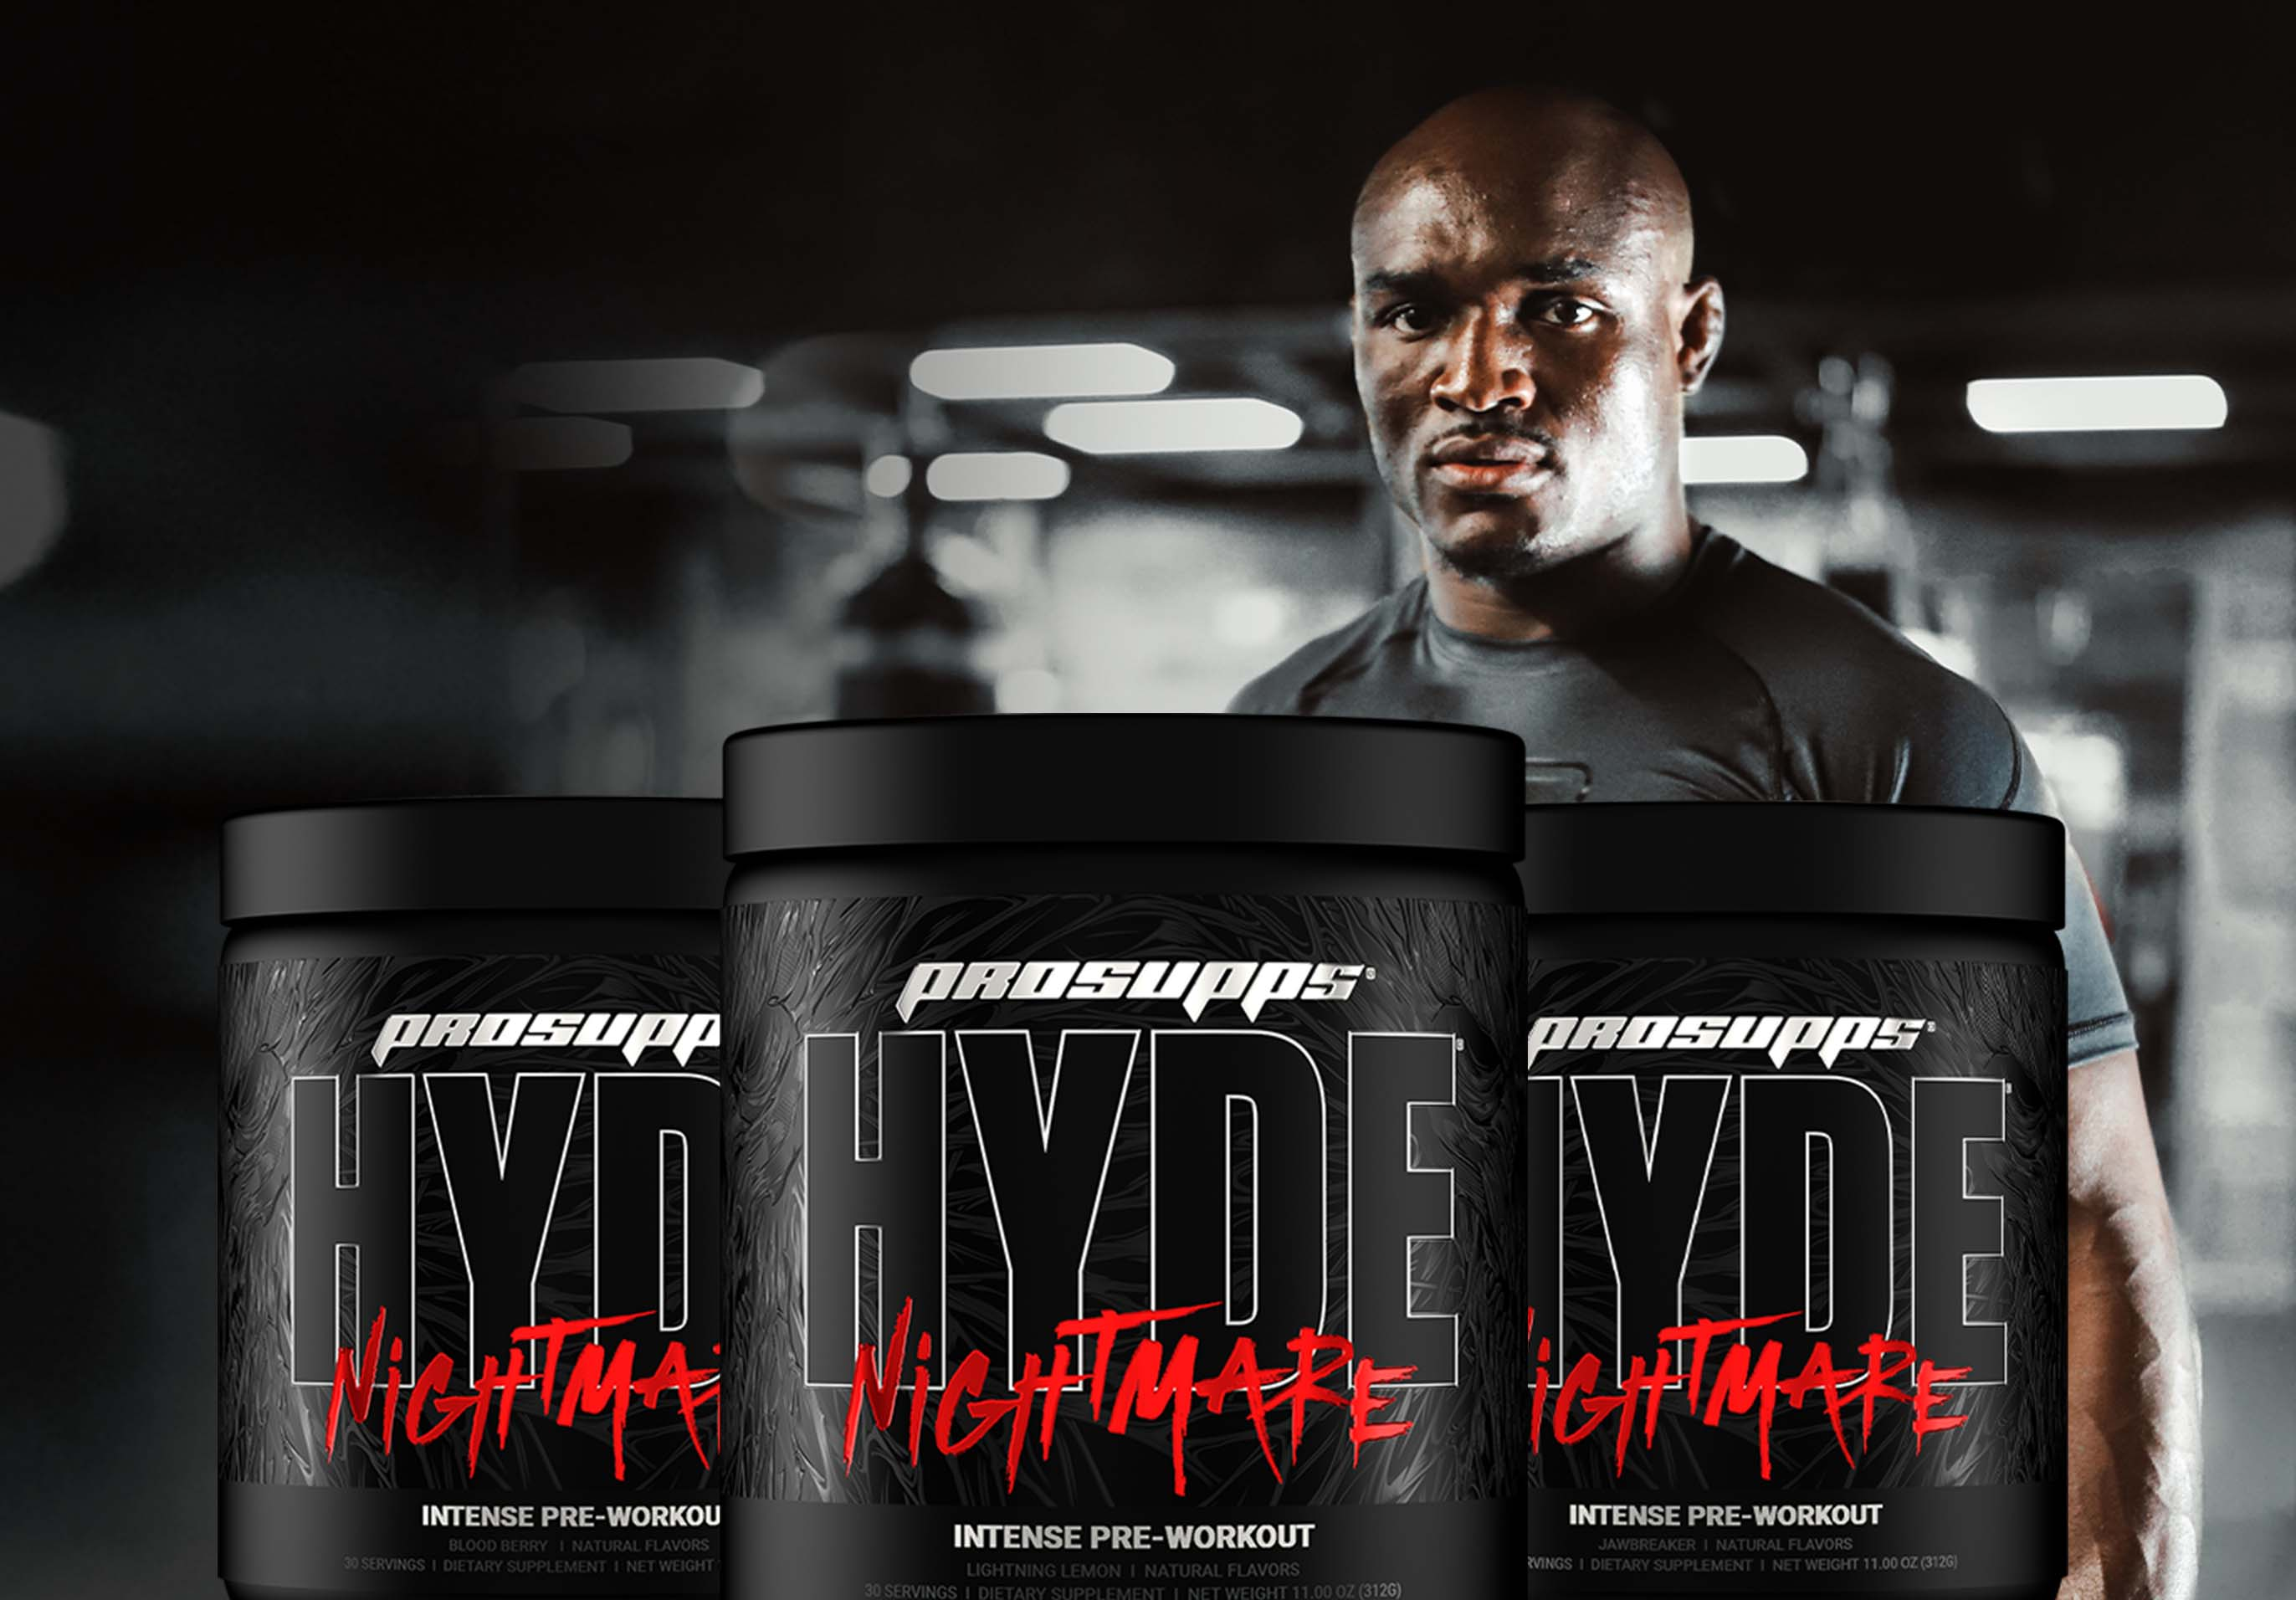 """NEW ProSupps® Hyde® Nightmare pre-workout is here! Buy it now and get a free shirt from UFC superstar Kamaru """"The Nigerian Nightmare"""" Usman*."""